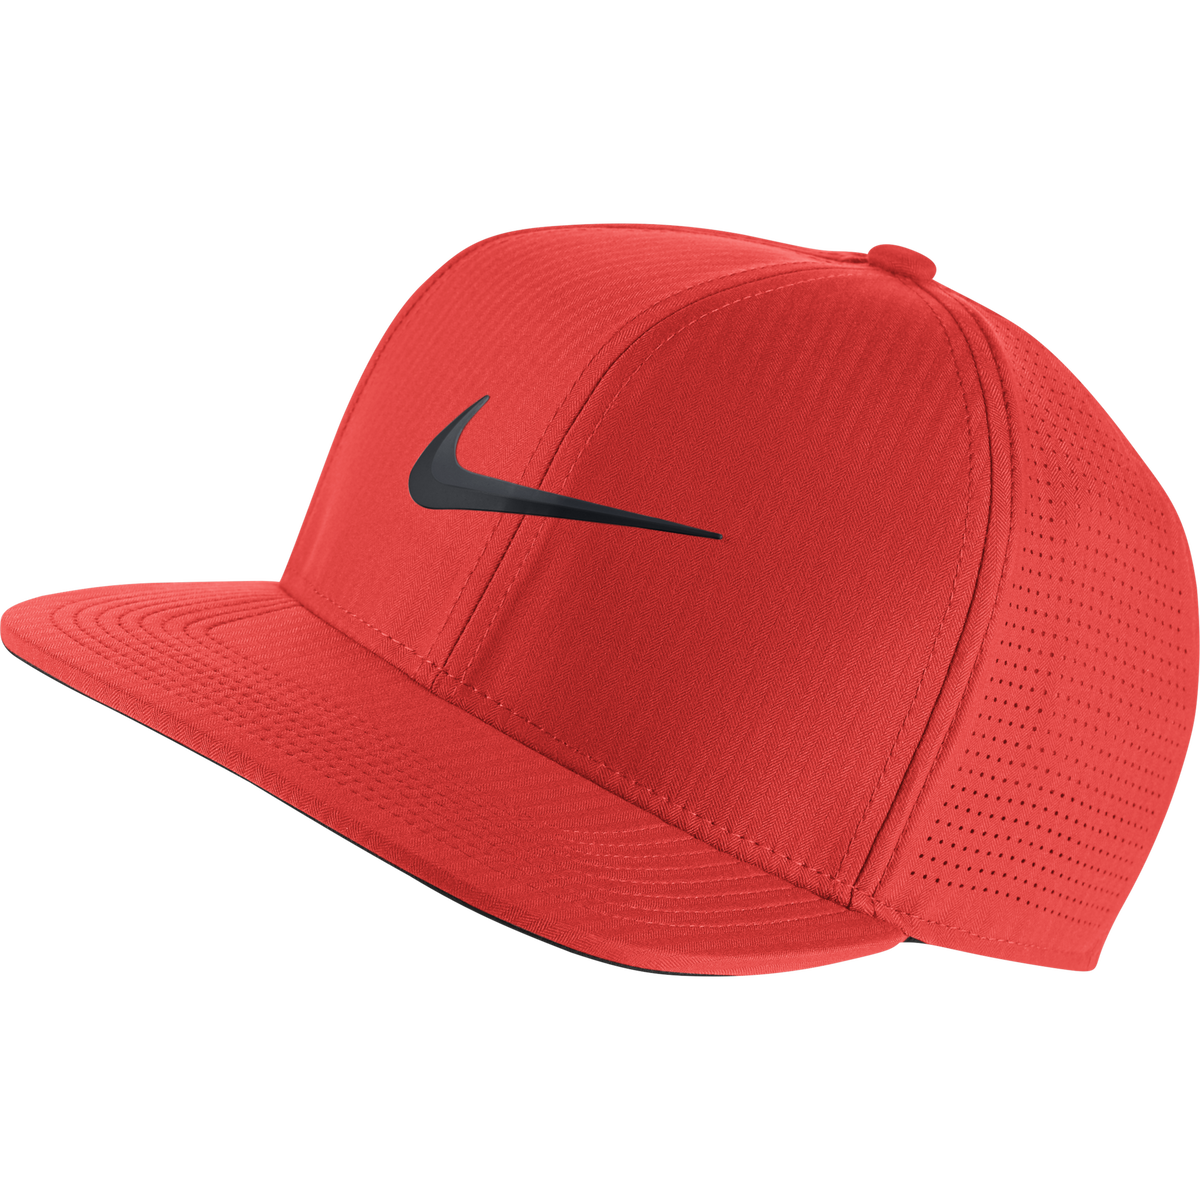 886fb78dce978 Images. AeroBill Golf Hat